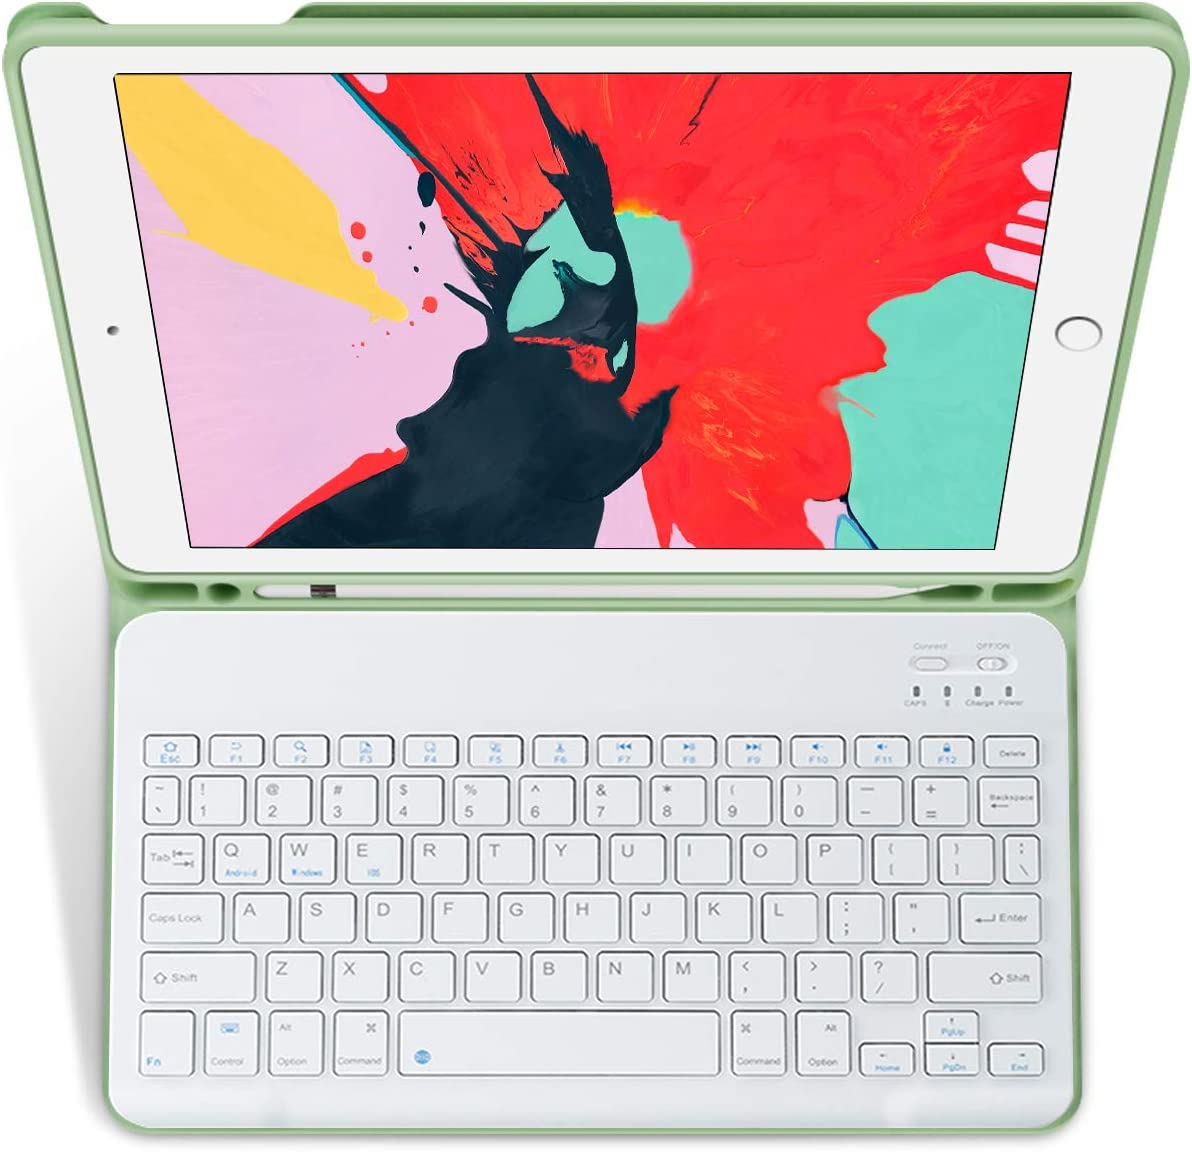 KenKe iPad 8th Generation 2020 Keyboard Case with Built-in Pencil Holder Cover 10.2,Magnetically Detachable Wireless Bluetooth Keyboard case for iPad 7th Generation 10.2 Inch iPad 7/8 Tablet-Green